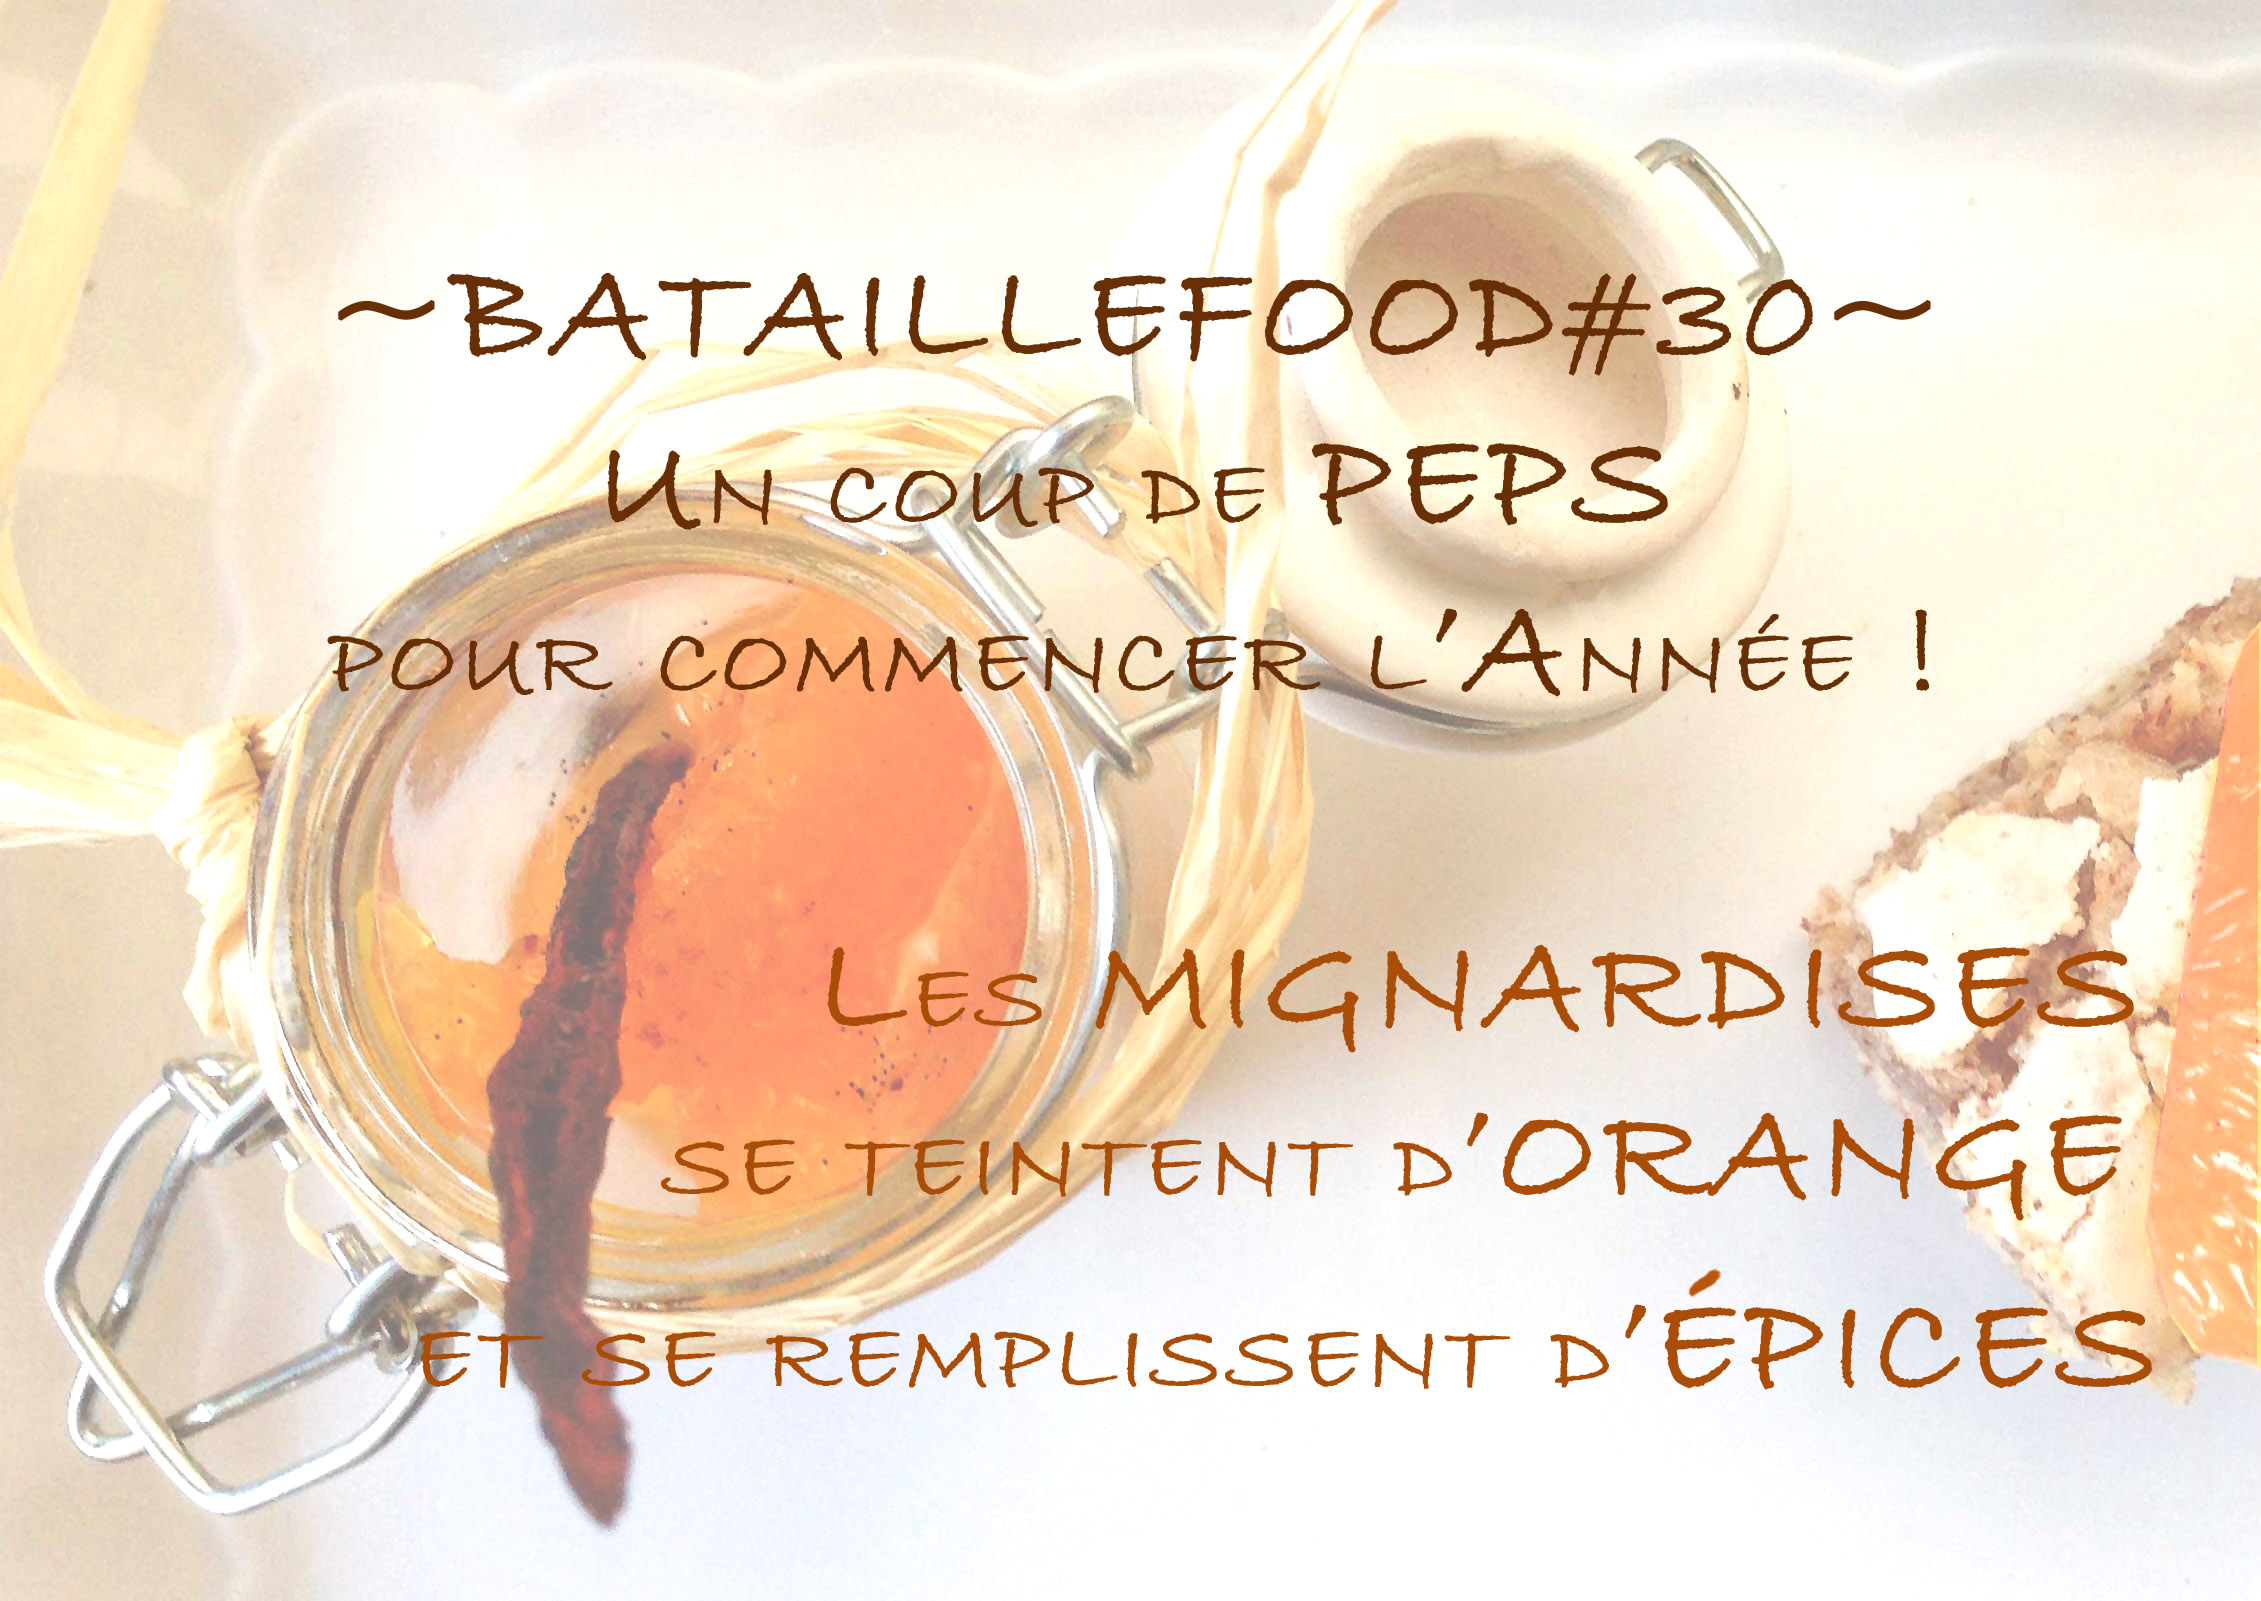 logo bataille food 30